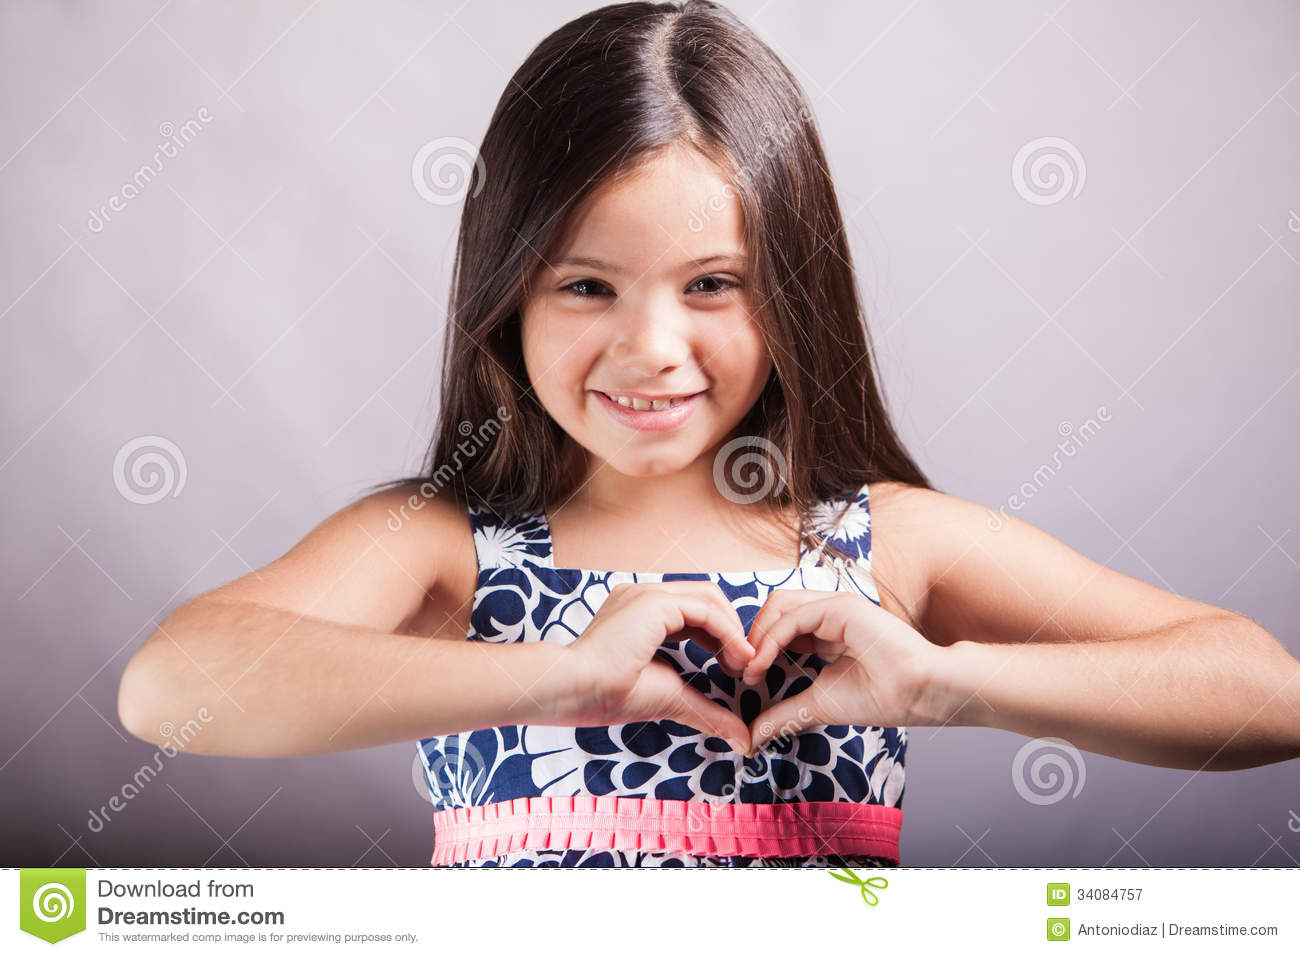 Girl Making A Heart With Her Hands Stock Image - Image of heart ...